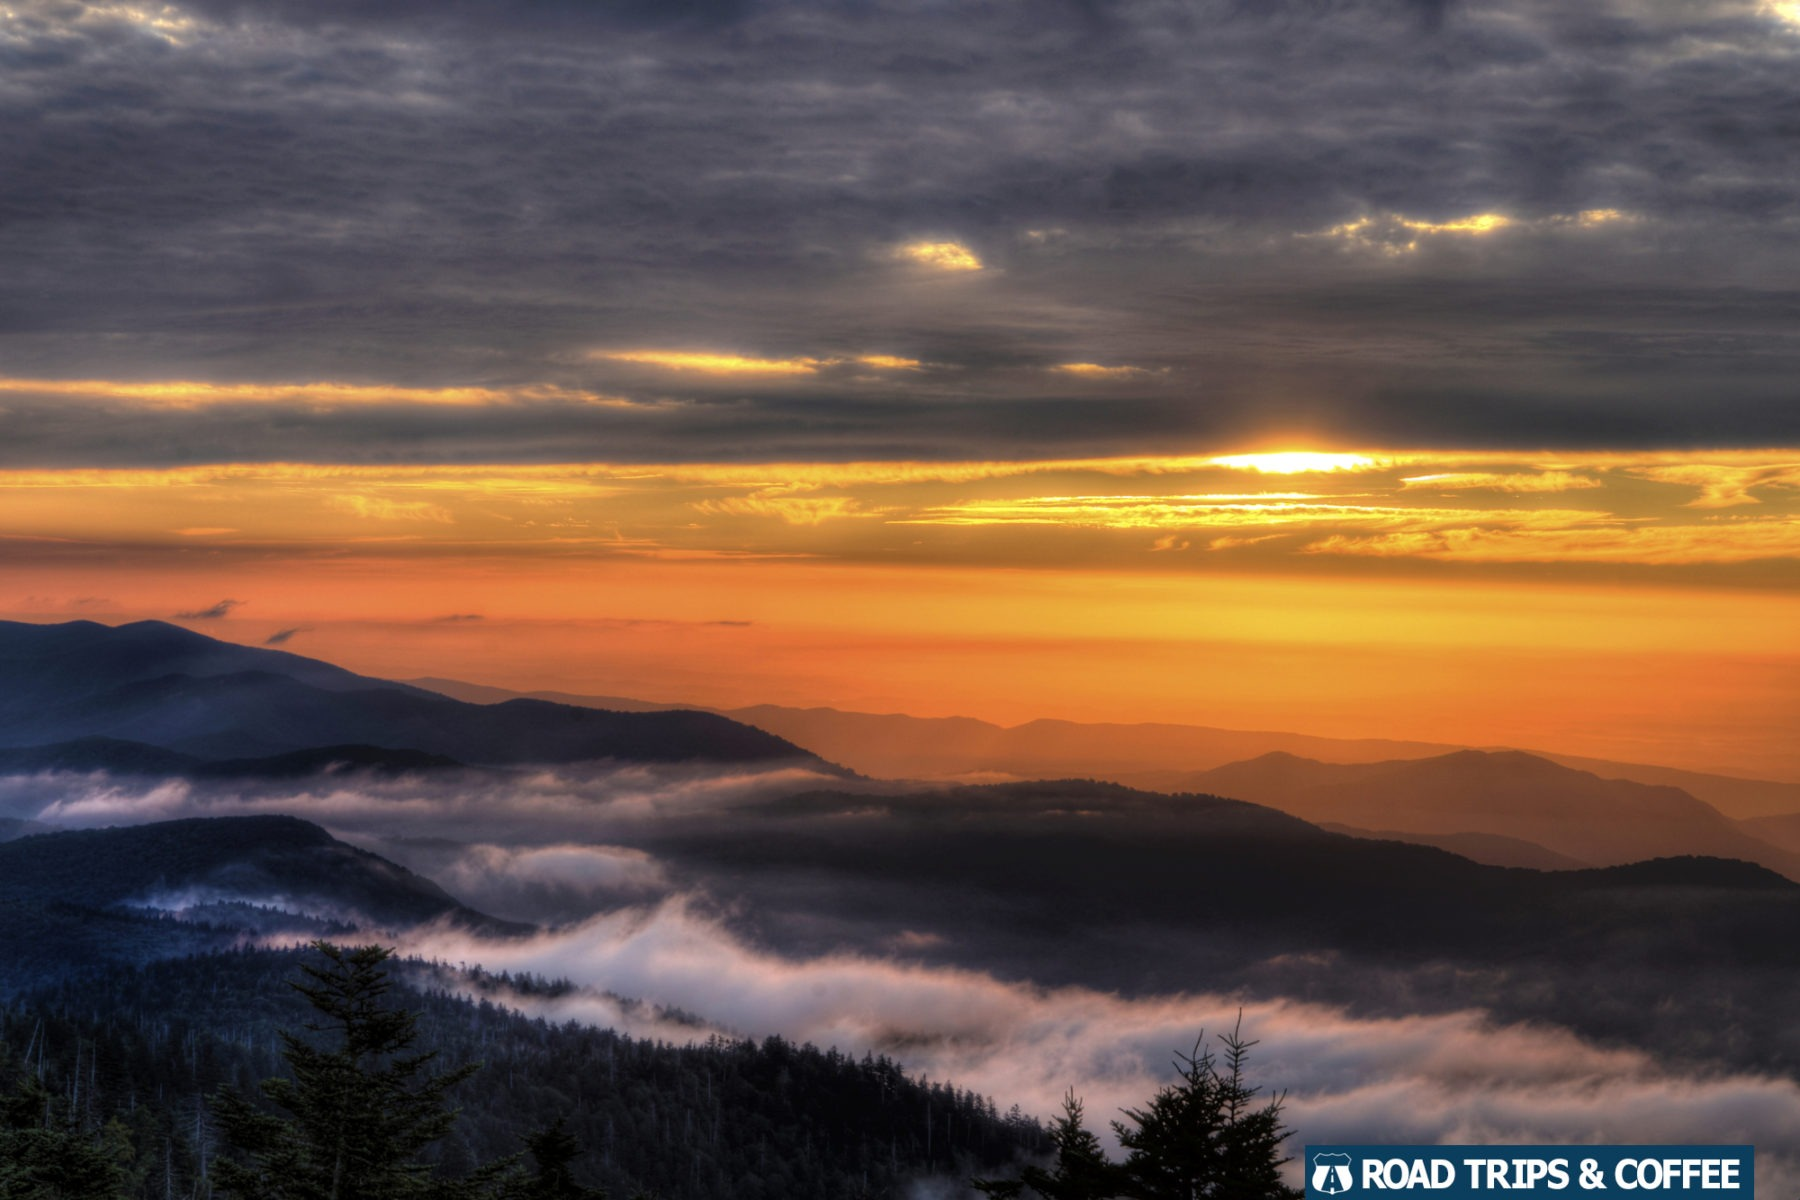 A warm orange sunset above lingering clouds on the mountains at Clingman's Dome in the Great Smoky Mountains National Park